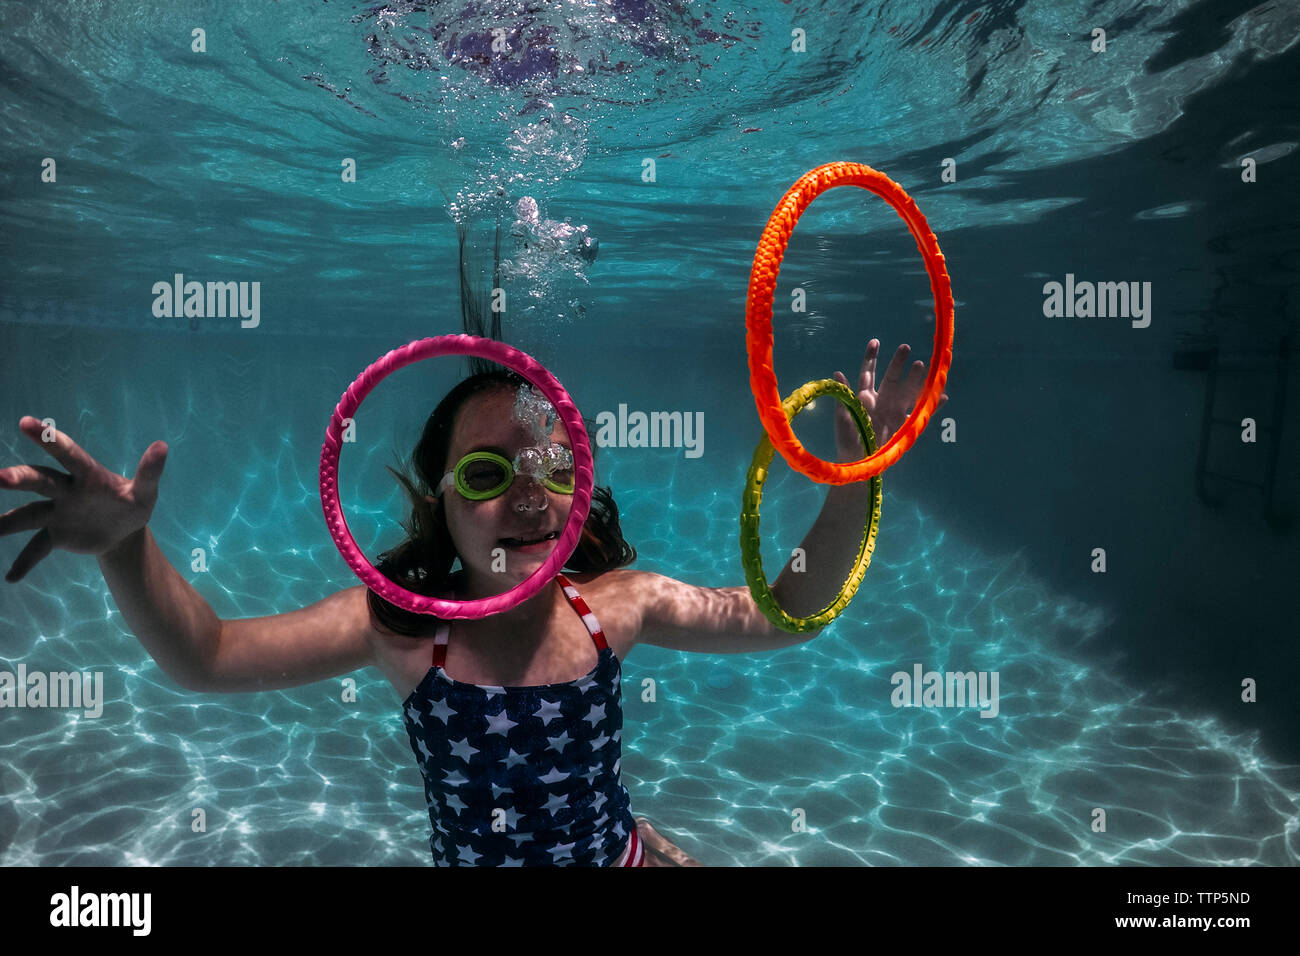 Smiling girl wearing swimming goggles while playing with colorful rings in pool Stock Photo